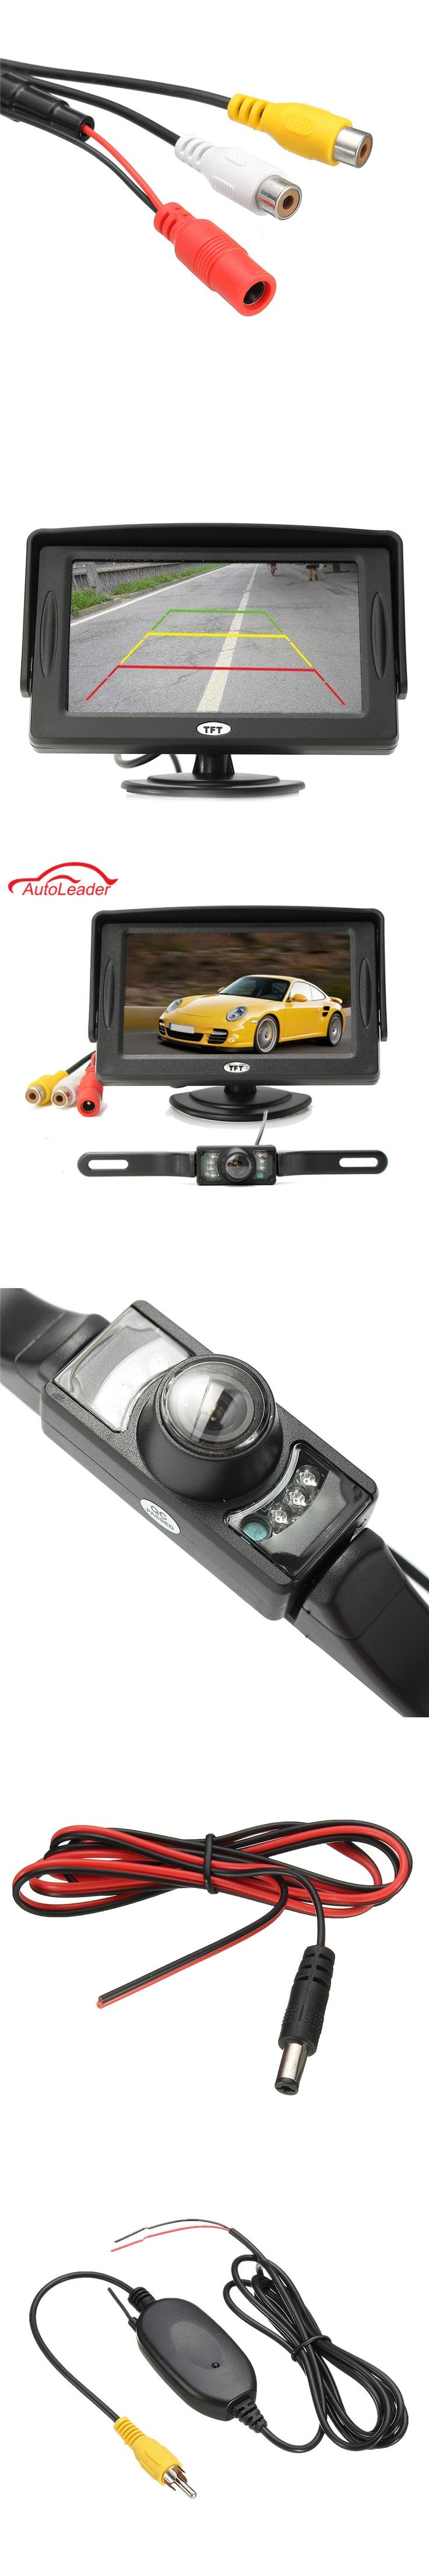 Best 25 Backup Camera Ideas On Pinterest Backup Camera